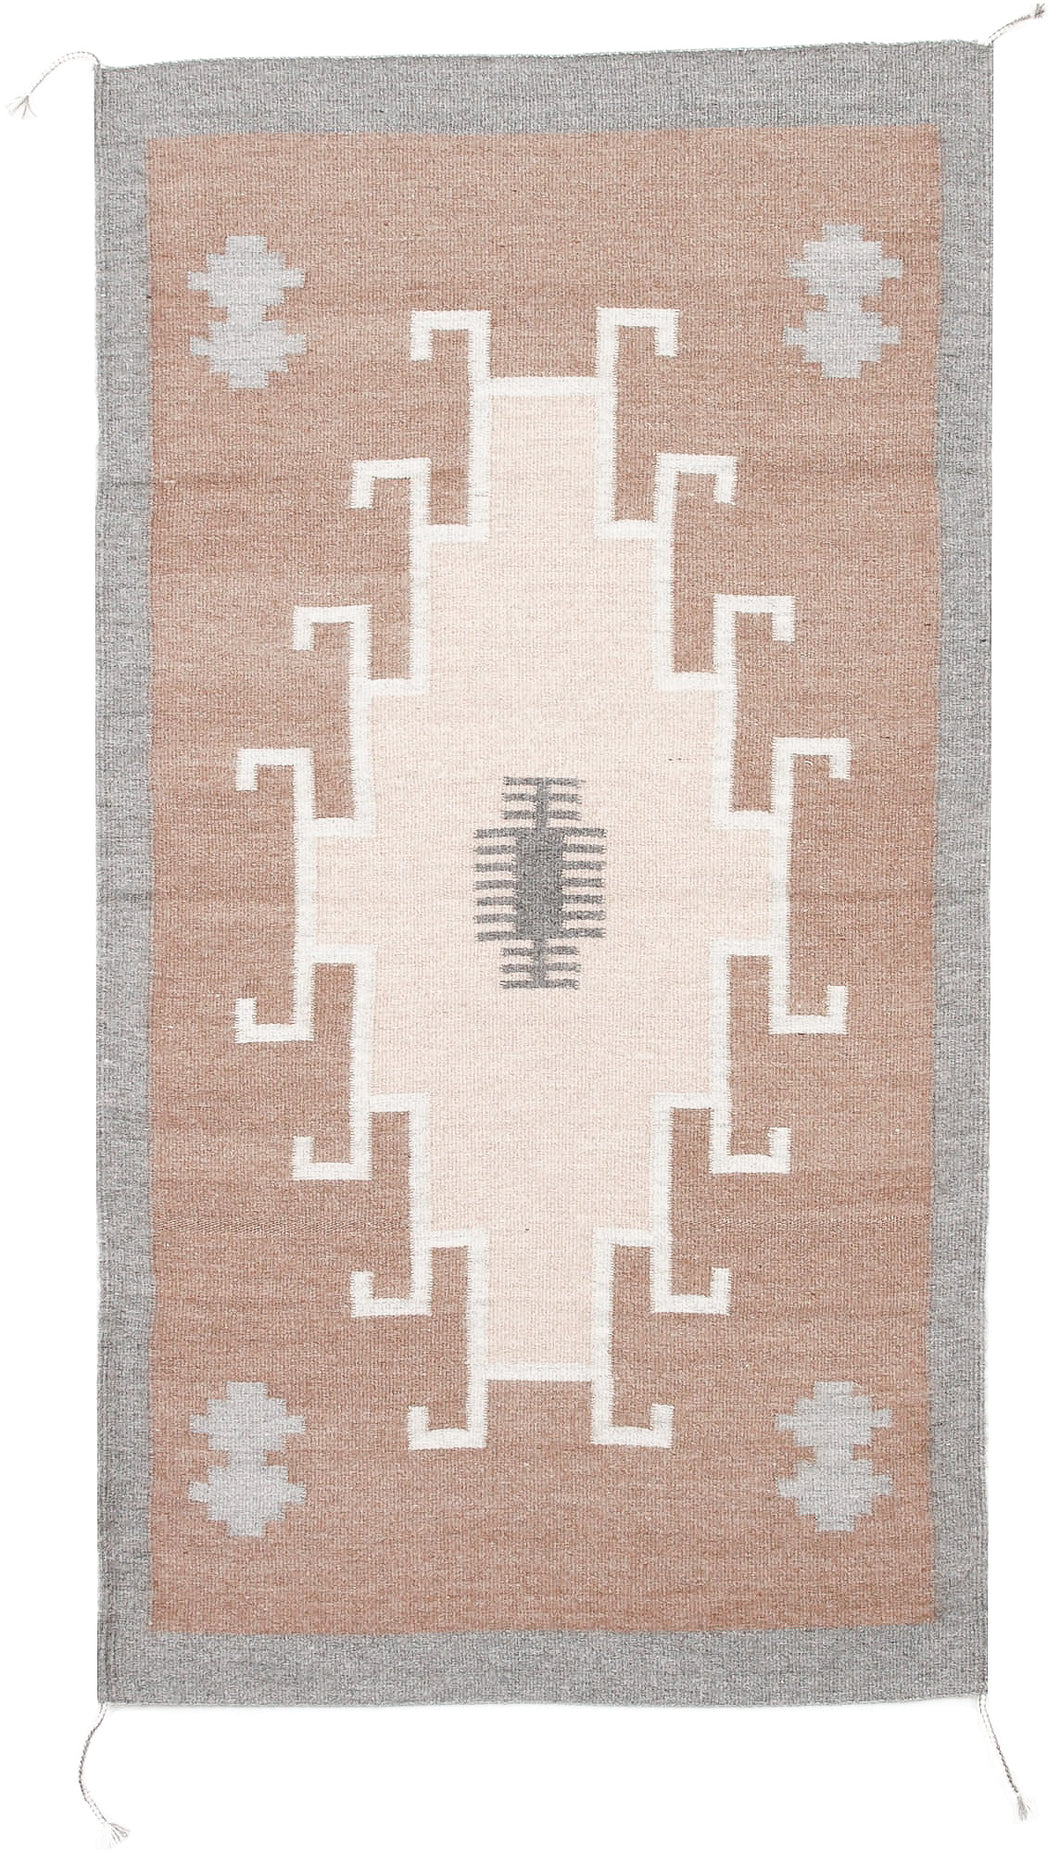 Handwoven Zapotec Rug - 1920s Lincoln Natural Wool Textile